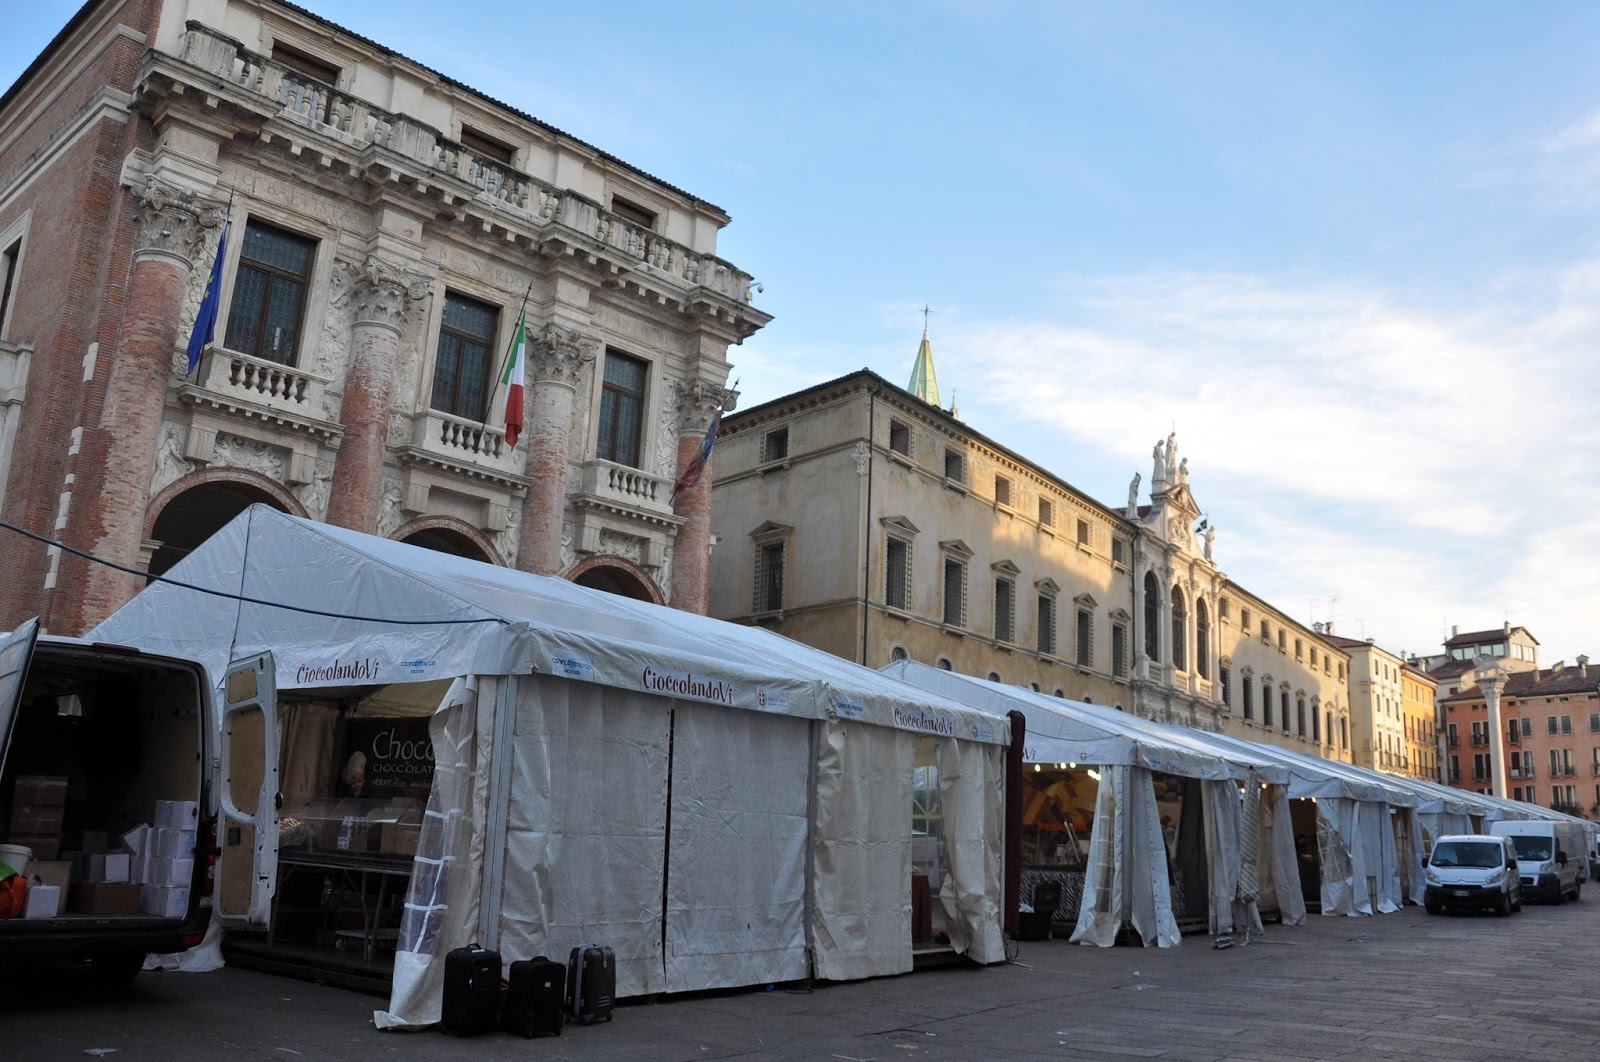 Getting ready, Chocolate Festival, Piazza dei Signori, Vicenza, Veneto, Italy-3